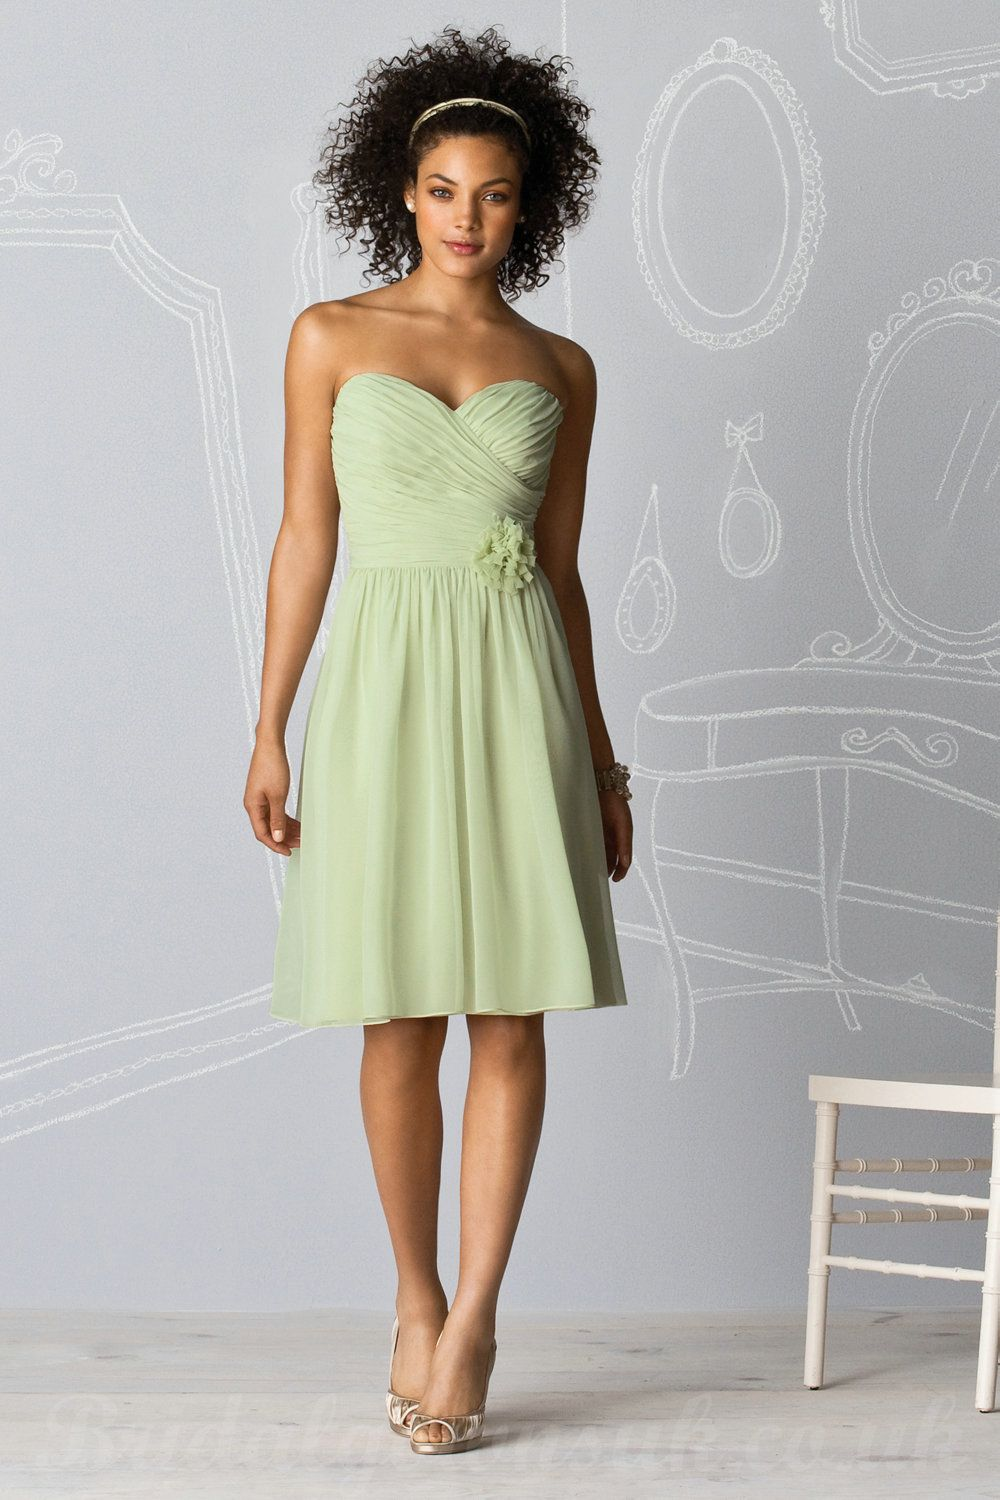 Our wedding colour mint sage green light sage so hard to find our wedding colour mint sage green light sage so hard to find things in chiffon bridesmaid dressesbridesmaid ombrellifo Gallery